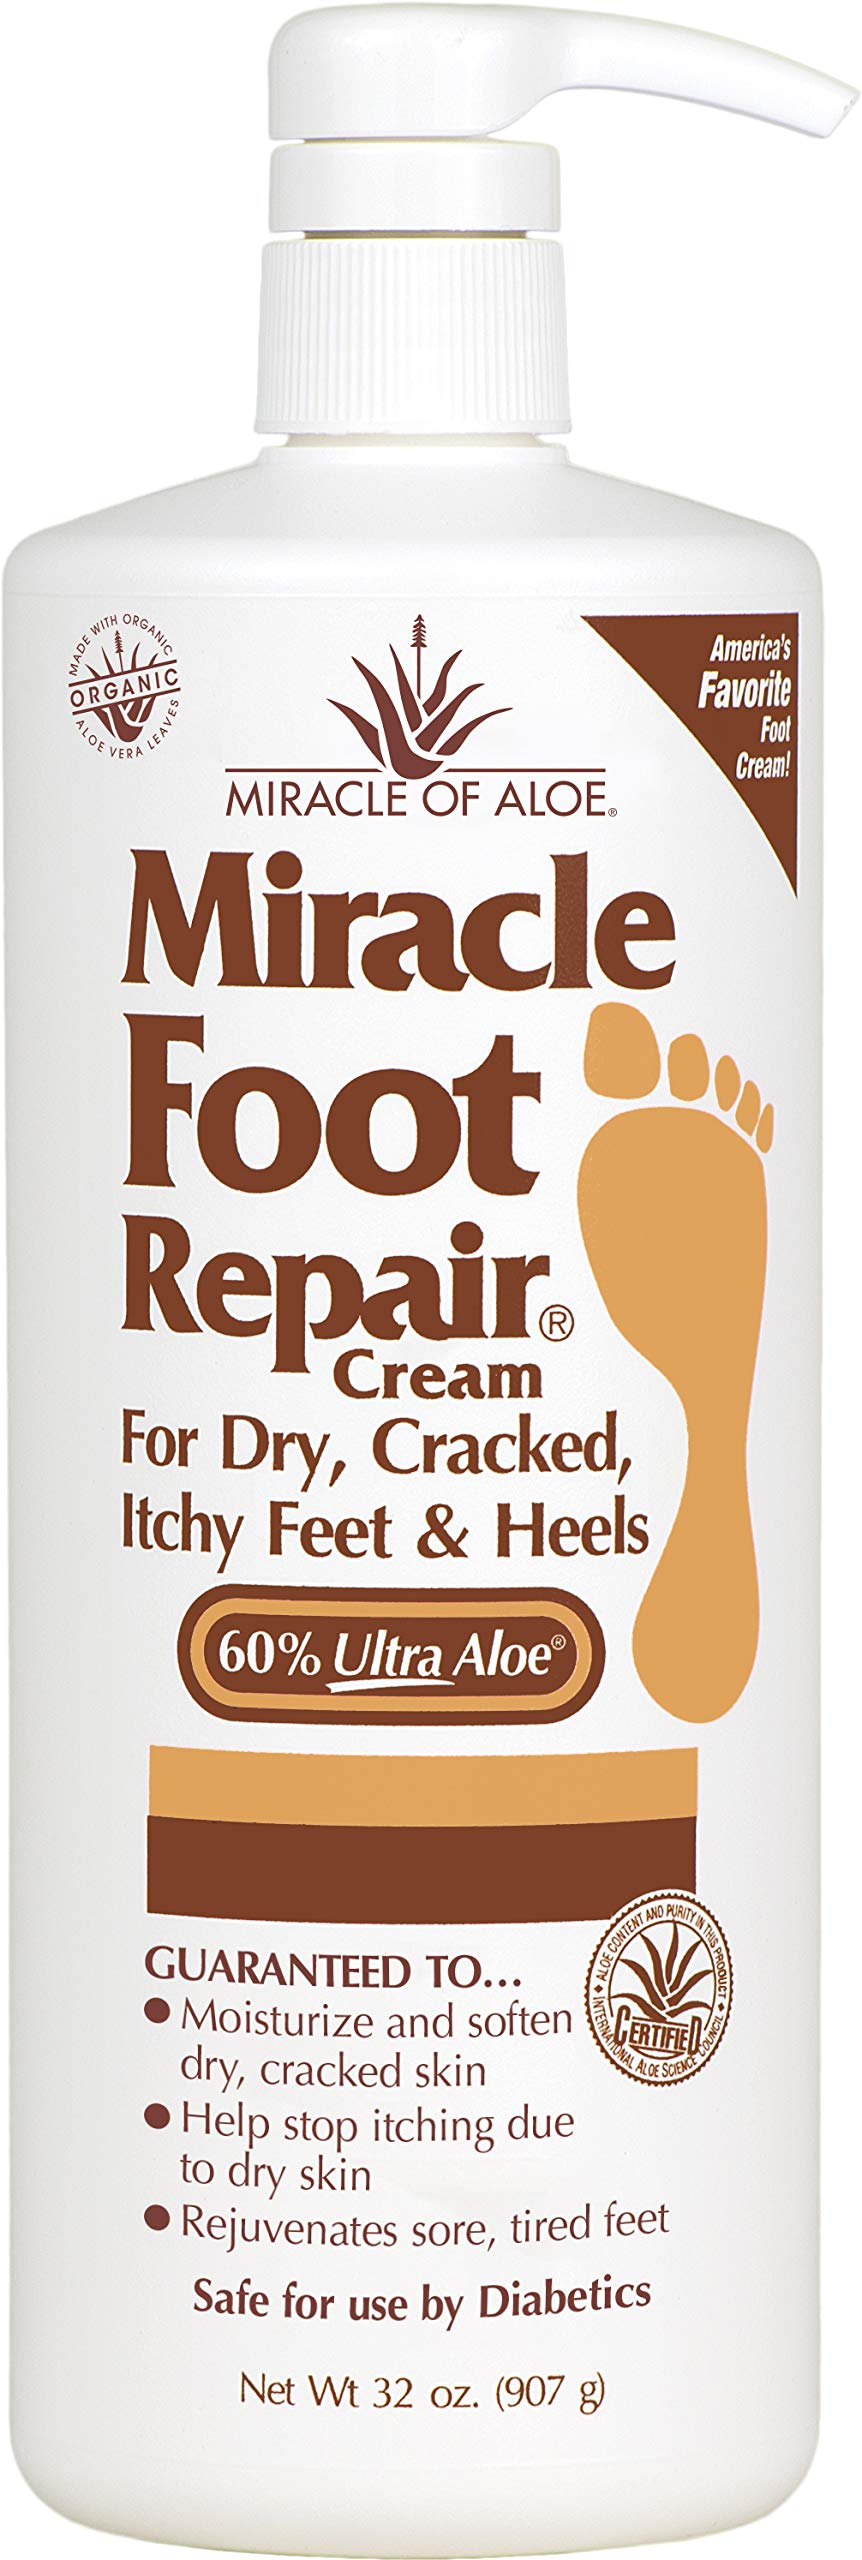 Miracle Foot Repair Cream 32 ounce bottle with pump with 60% UltraAloe by Miracle of Aloe